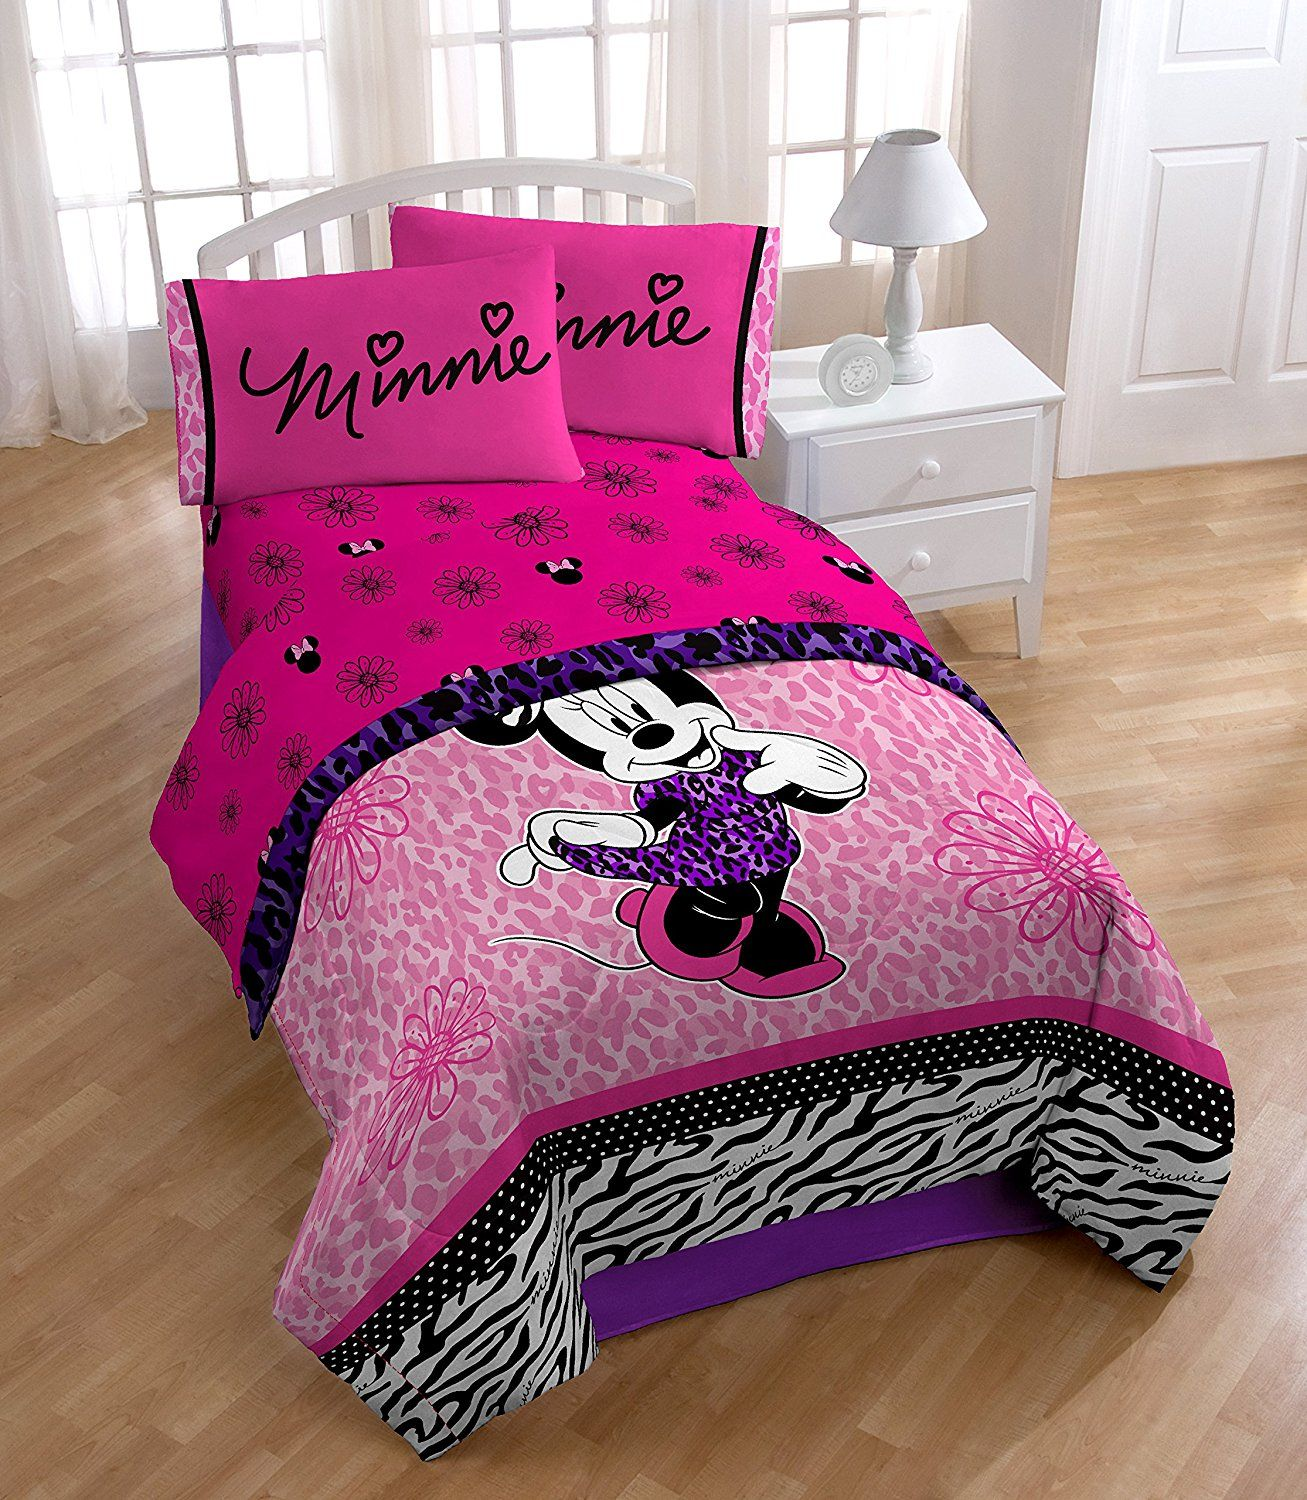 Cutest Minnie Mouse Bedding For Your Adorable Toddler Bettwäsche Kinder Bettwäsche Minnie Mouse Bettwäsche